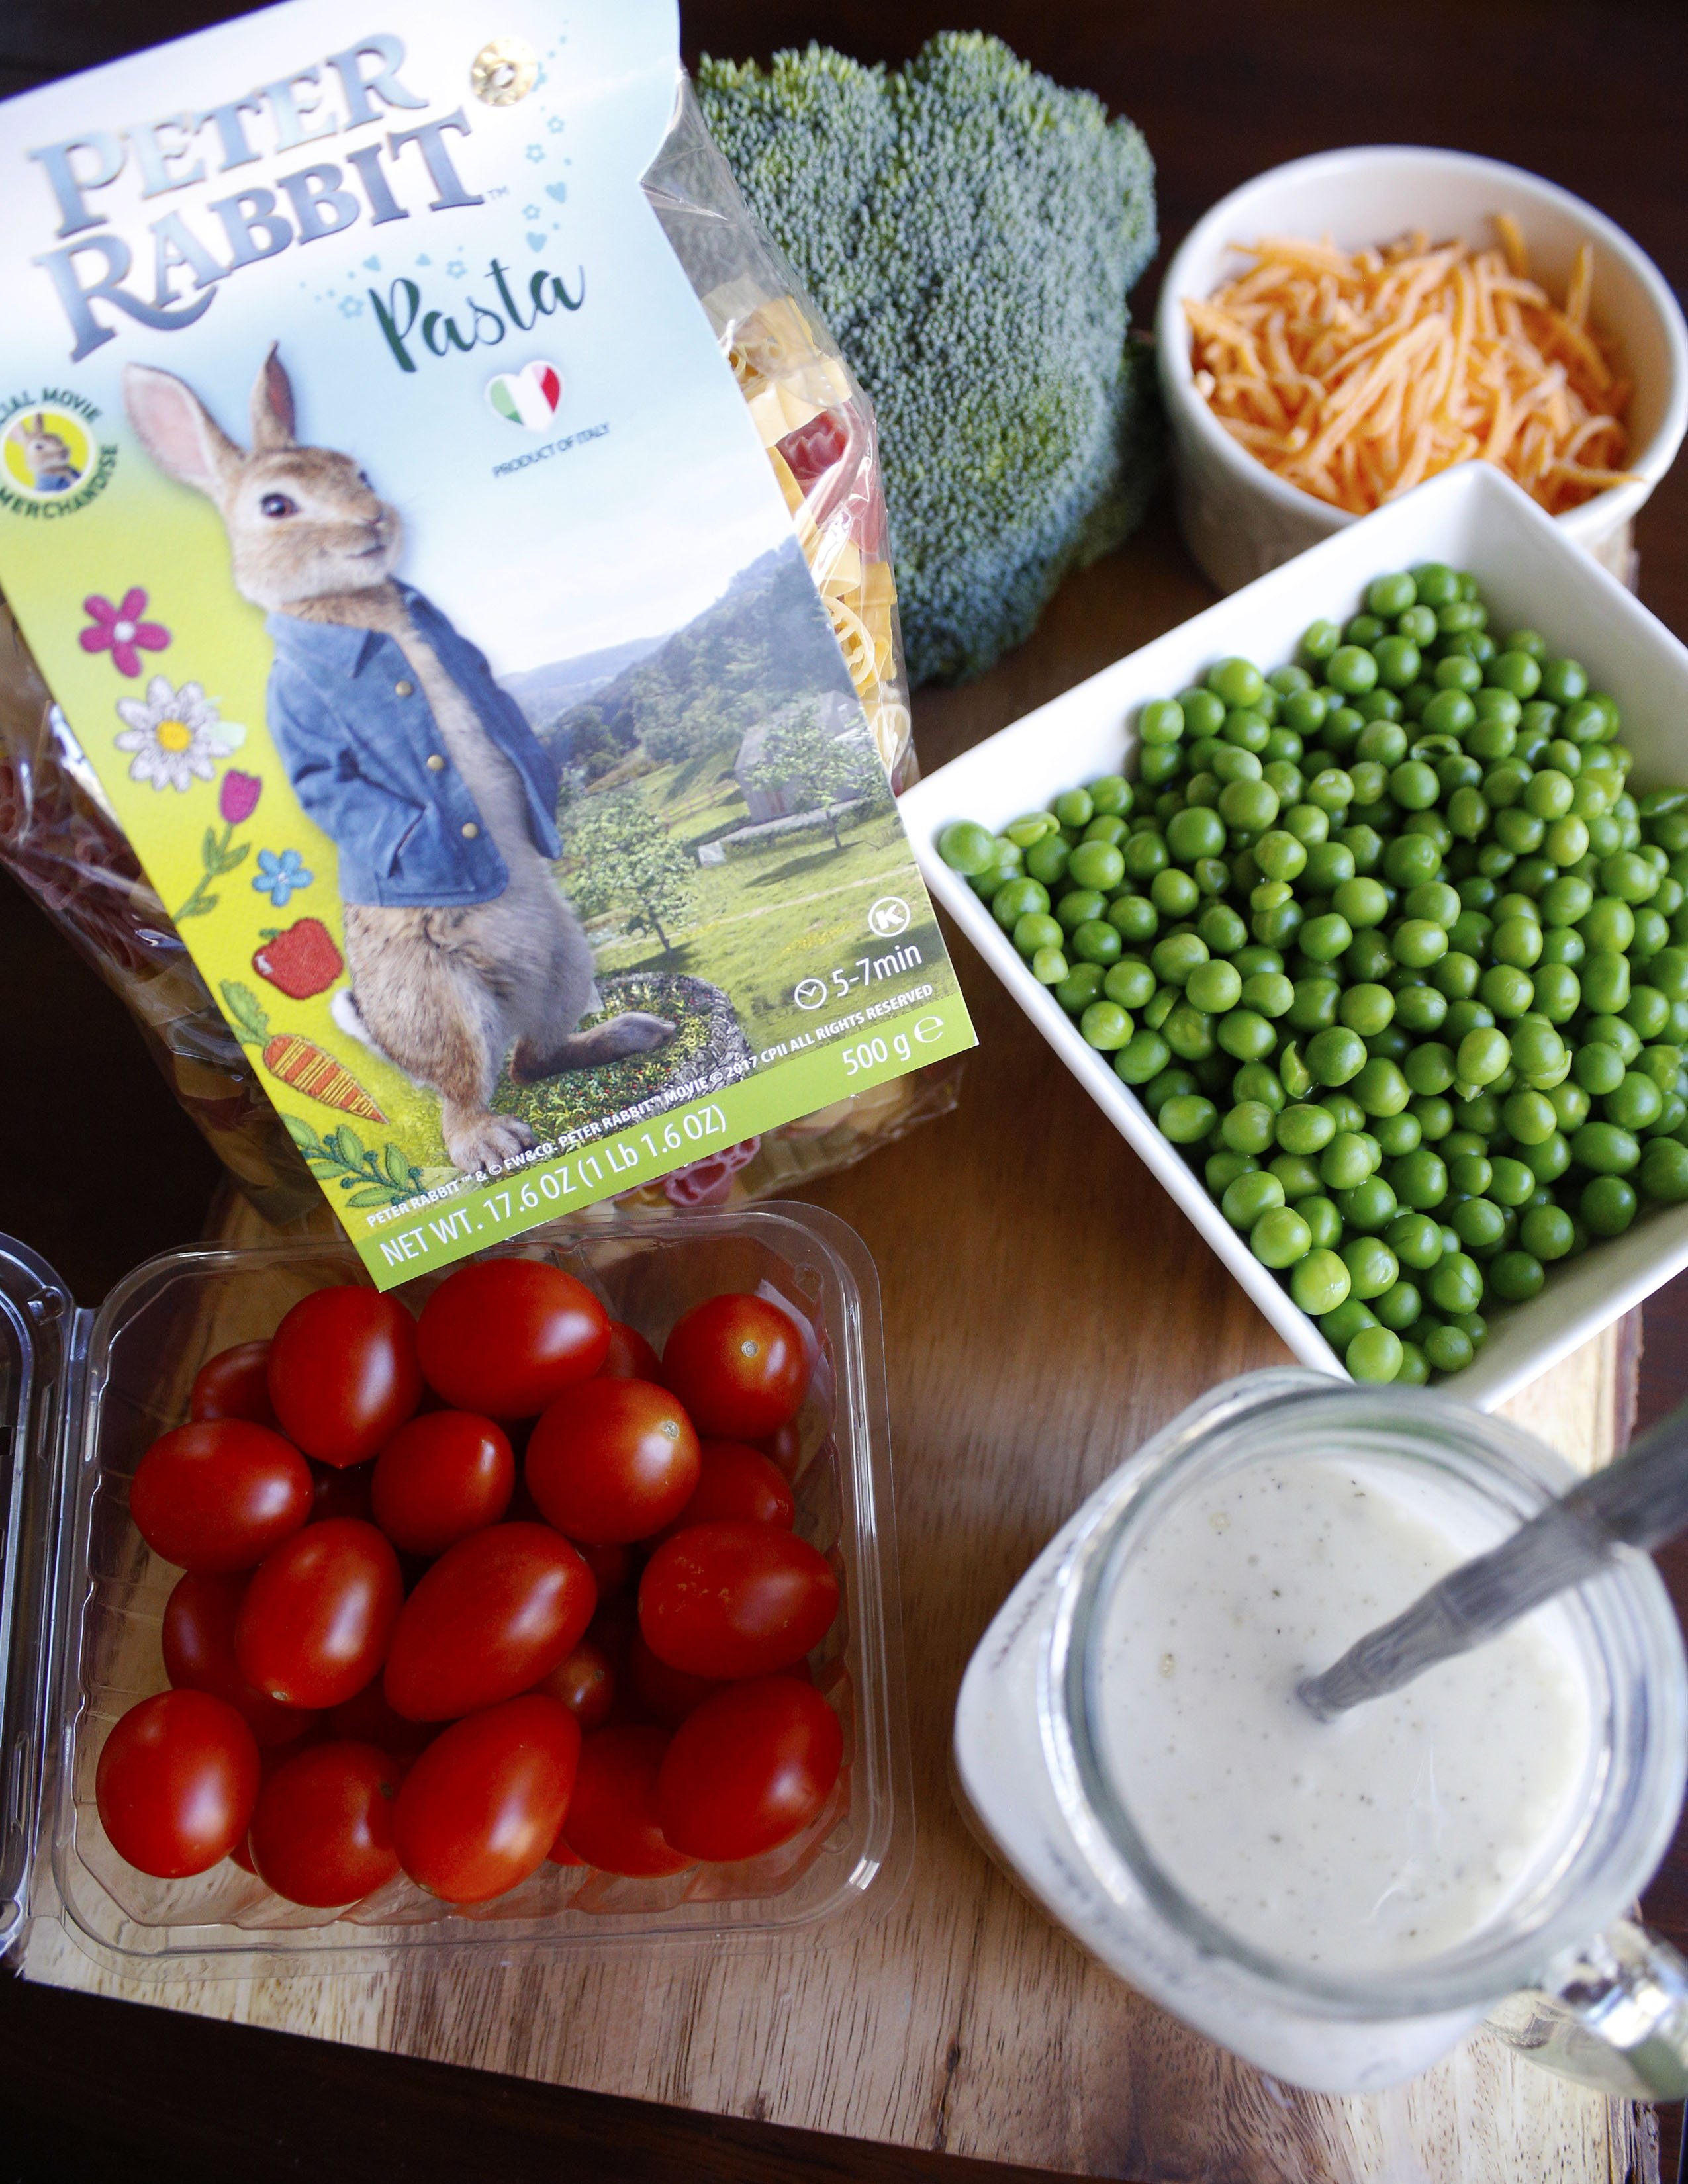 Ingredients for Peter Rabbit pasta salad - bunny shaped pasta, tomatoes, broccoli, cheese, peas, and ranch dressing